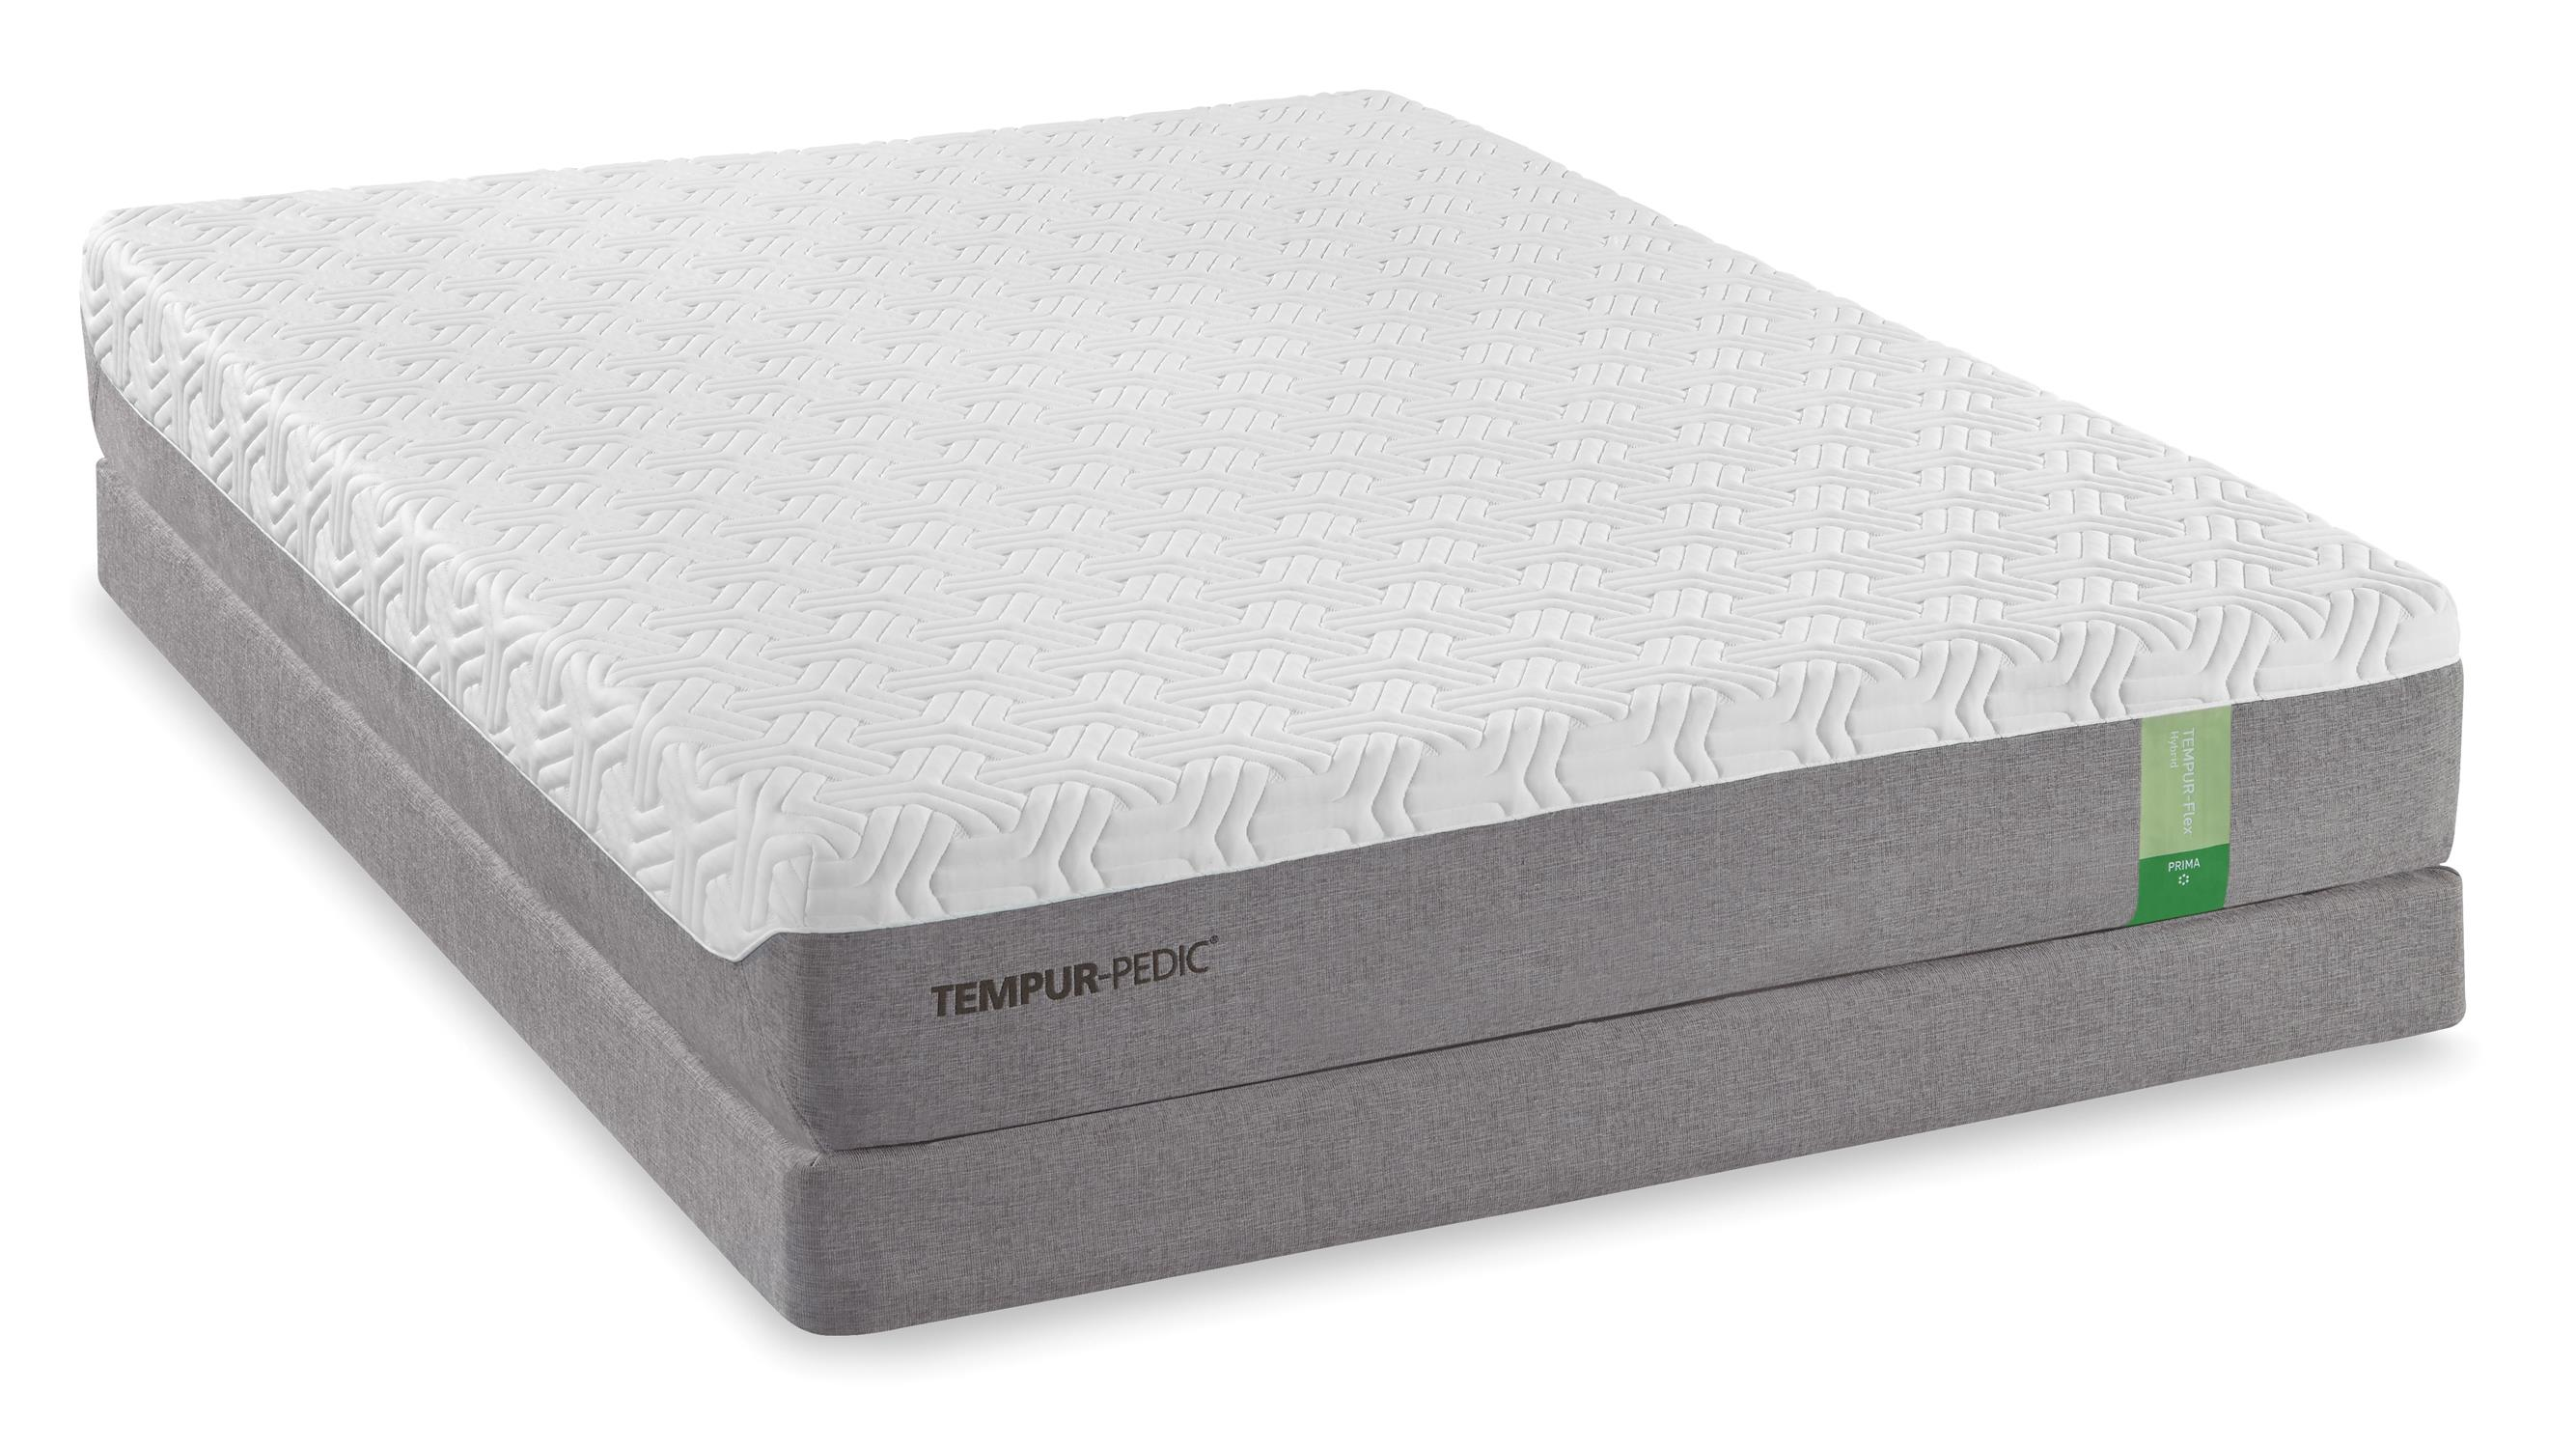 Tempur-Pedic® TEMPUR-Flex Prima Full Medium Firm Mattress Set - Item Number: 10115230+20510130